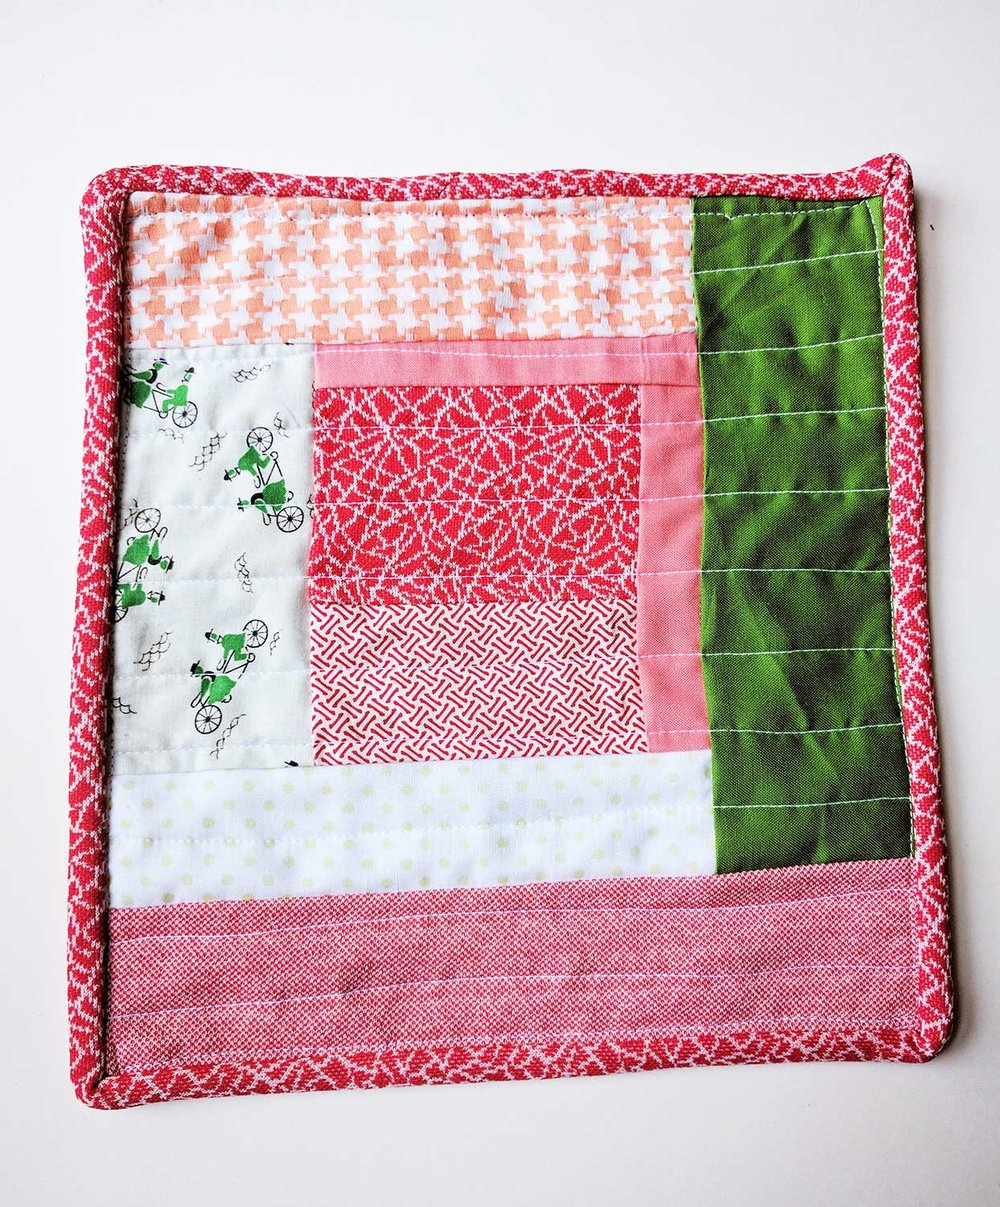 Quilted-Potholder-2.jpg